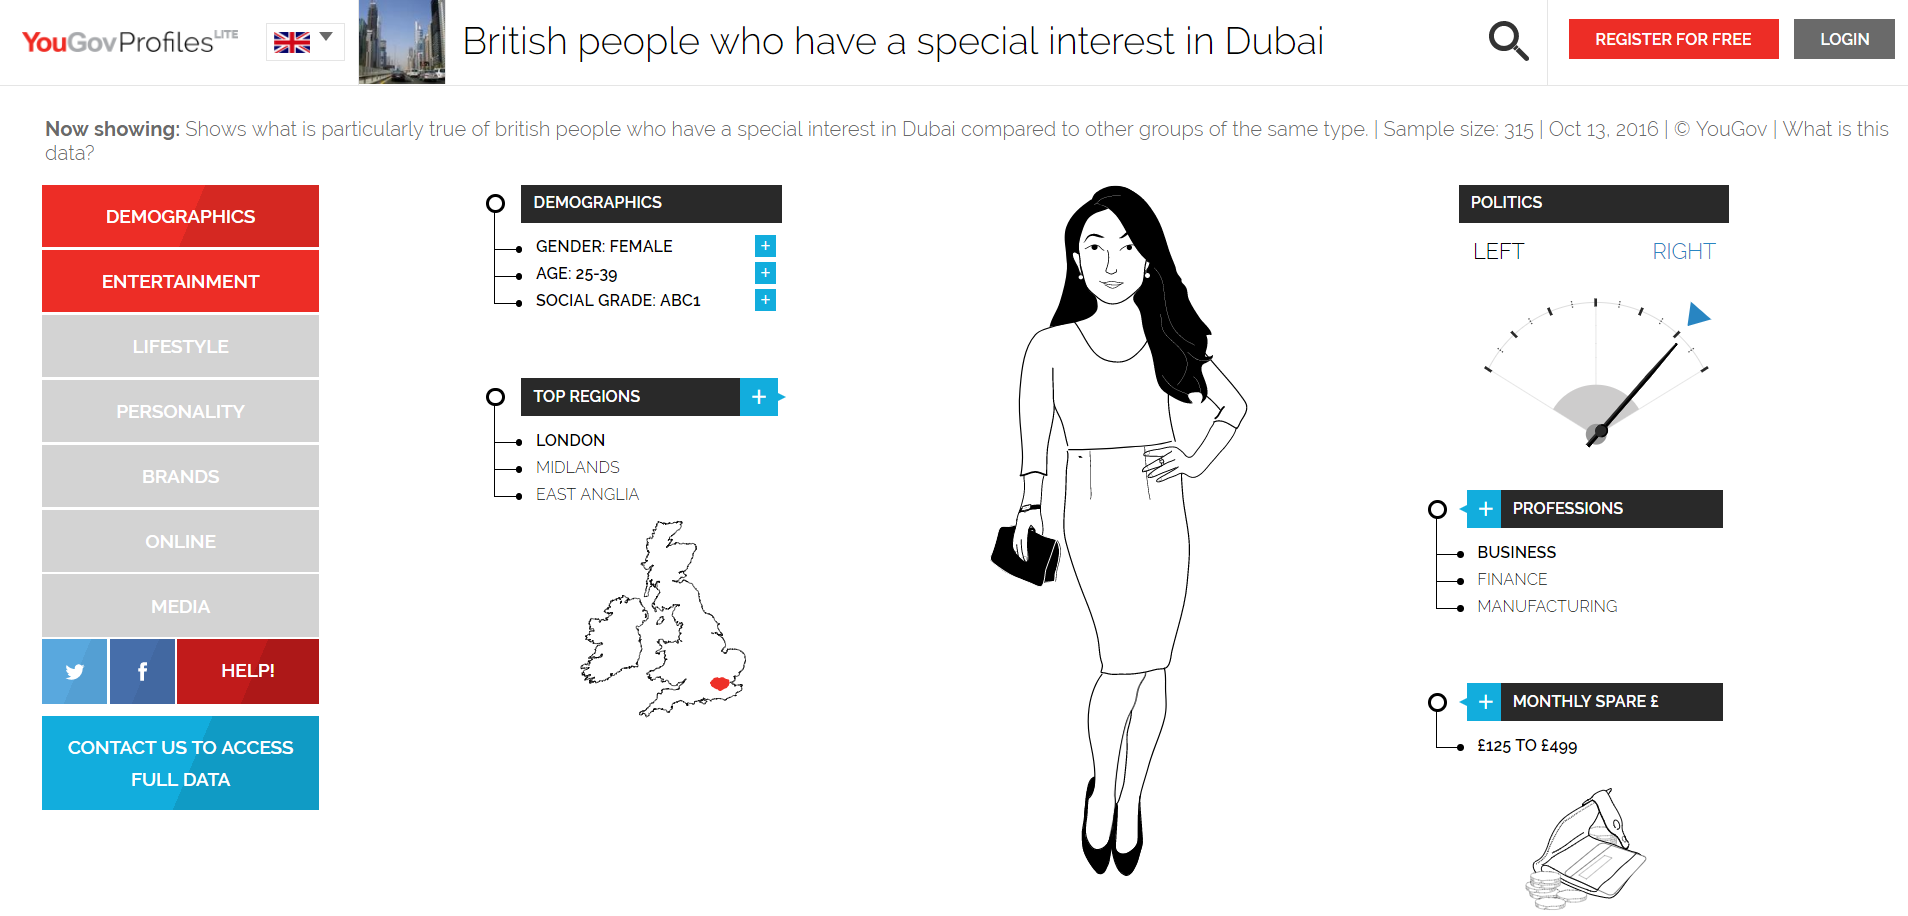 YouGov Profiles, British people with a special interest in Dubai